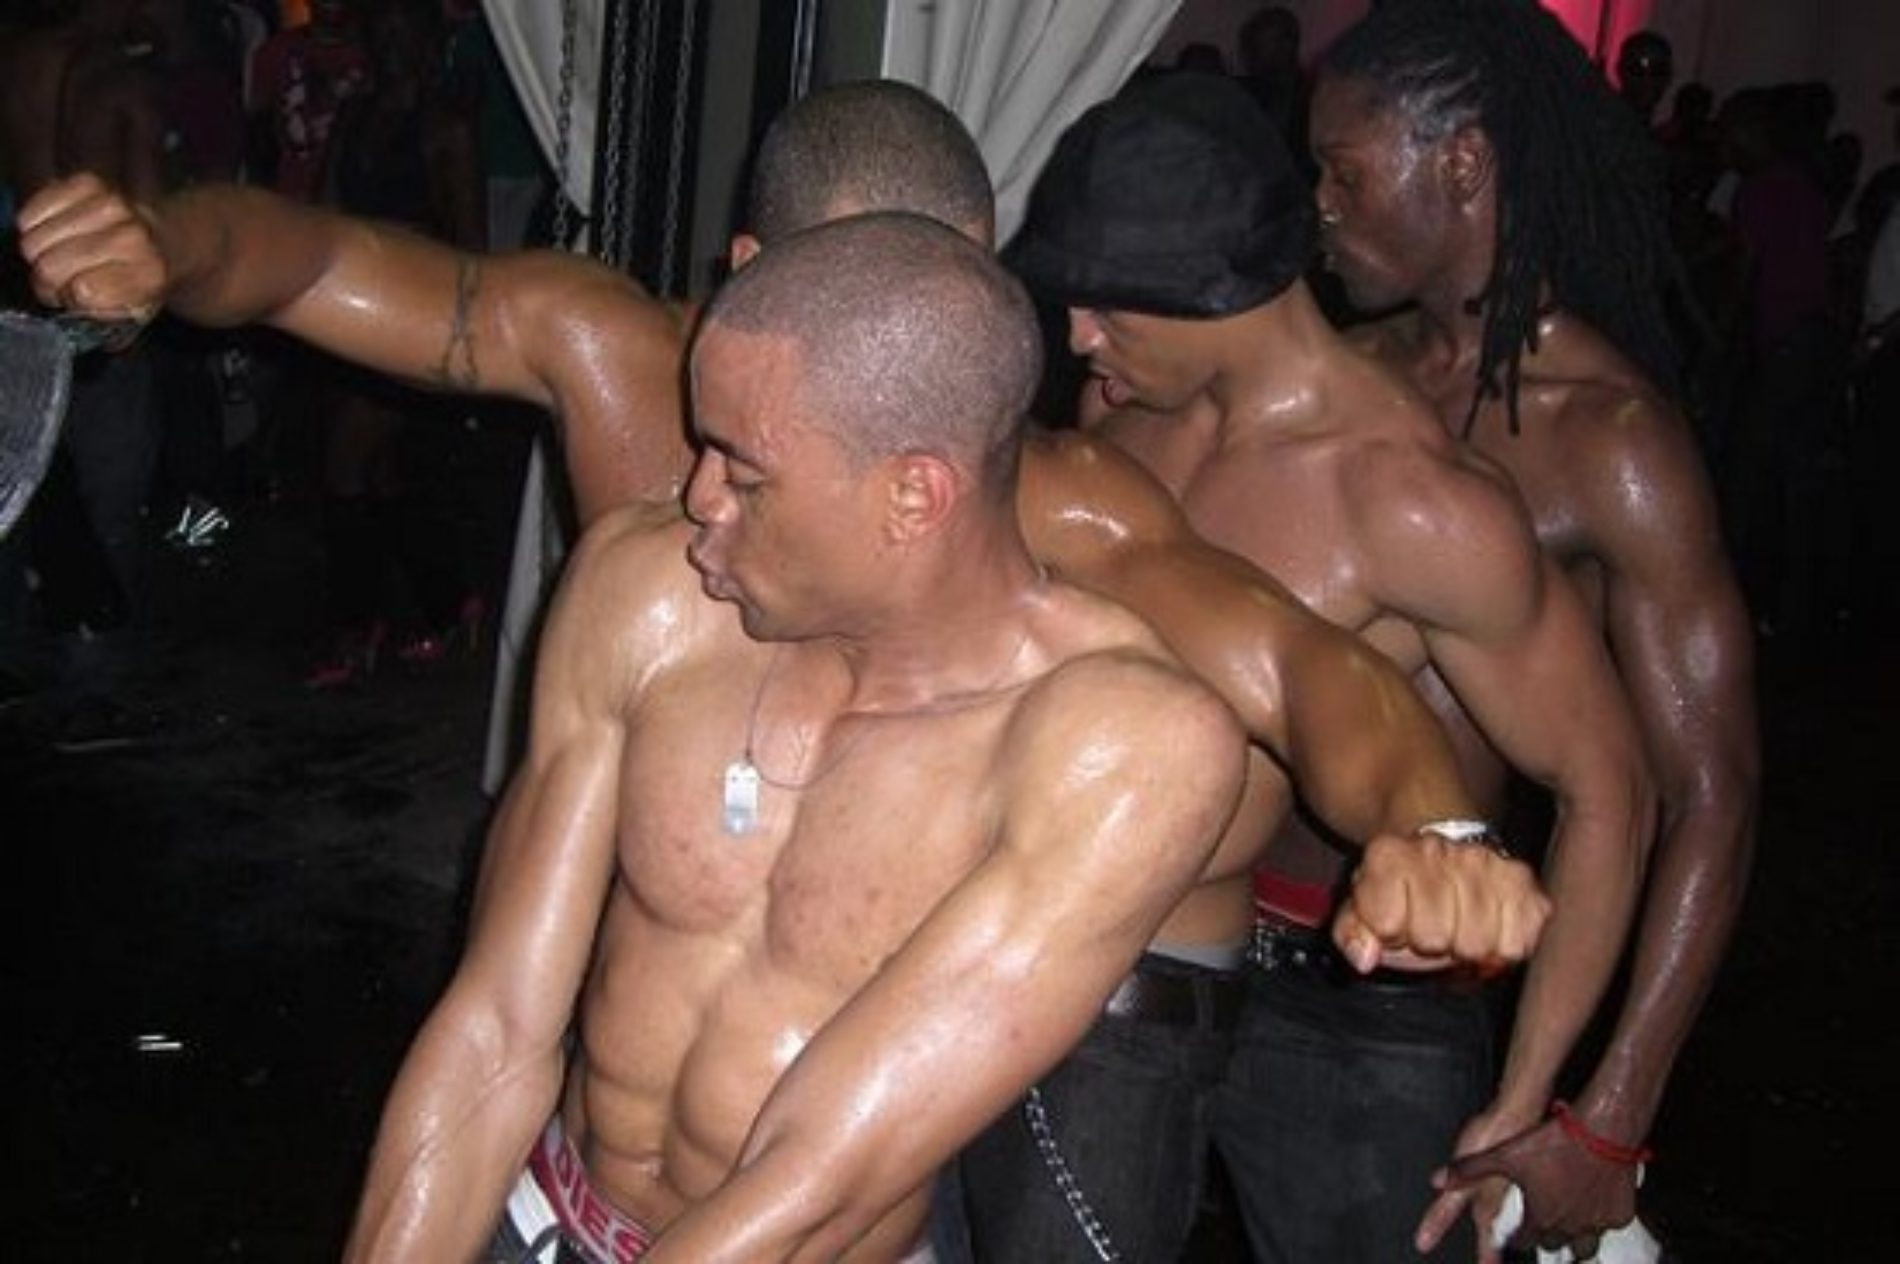 My Fascination With Gay Parties